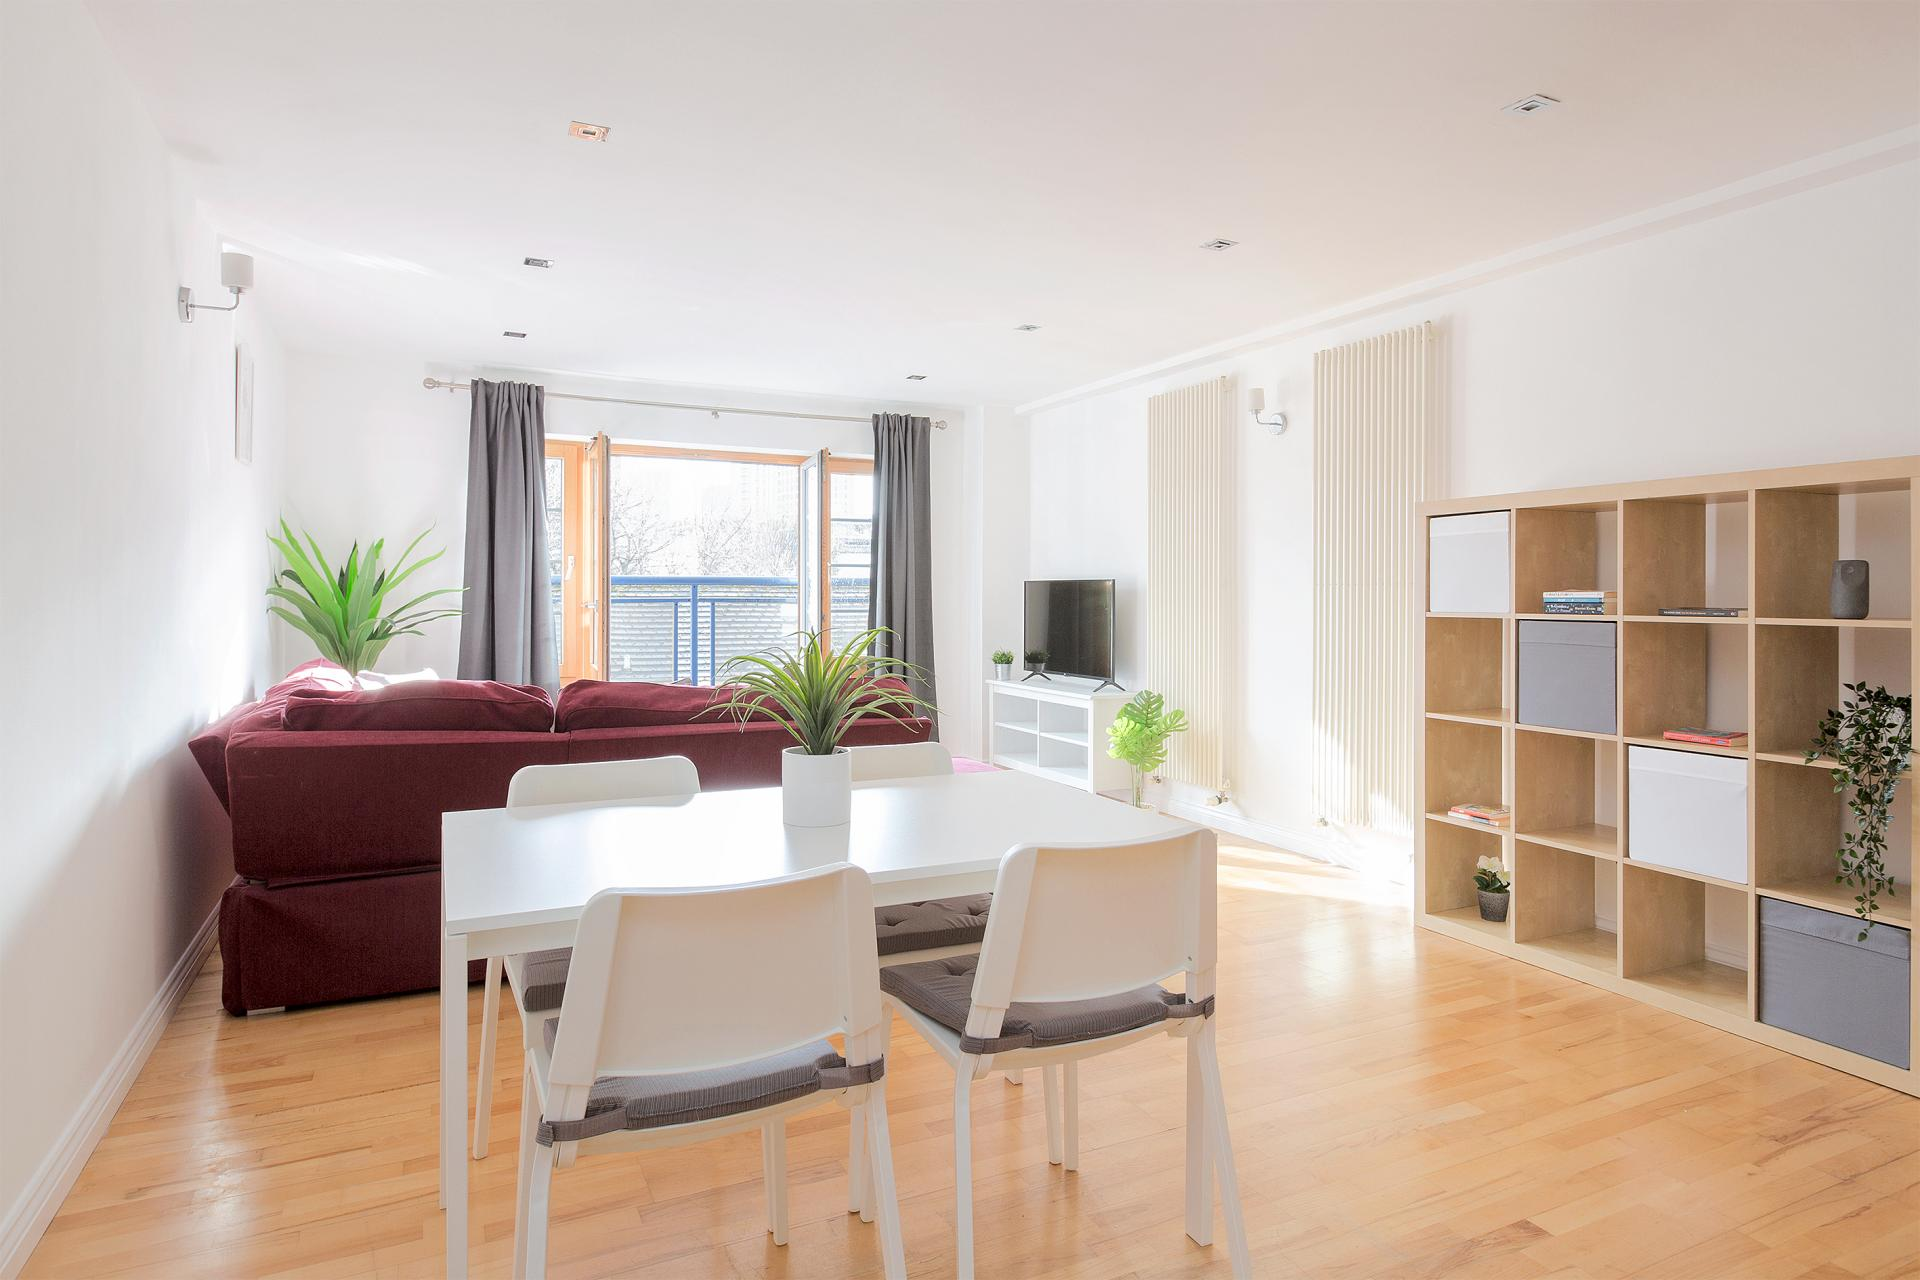 Dining area at Serenity Apartment, Whitechapel, London - Citybase Apartments